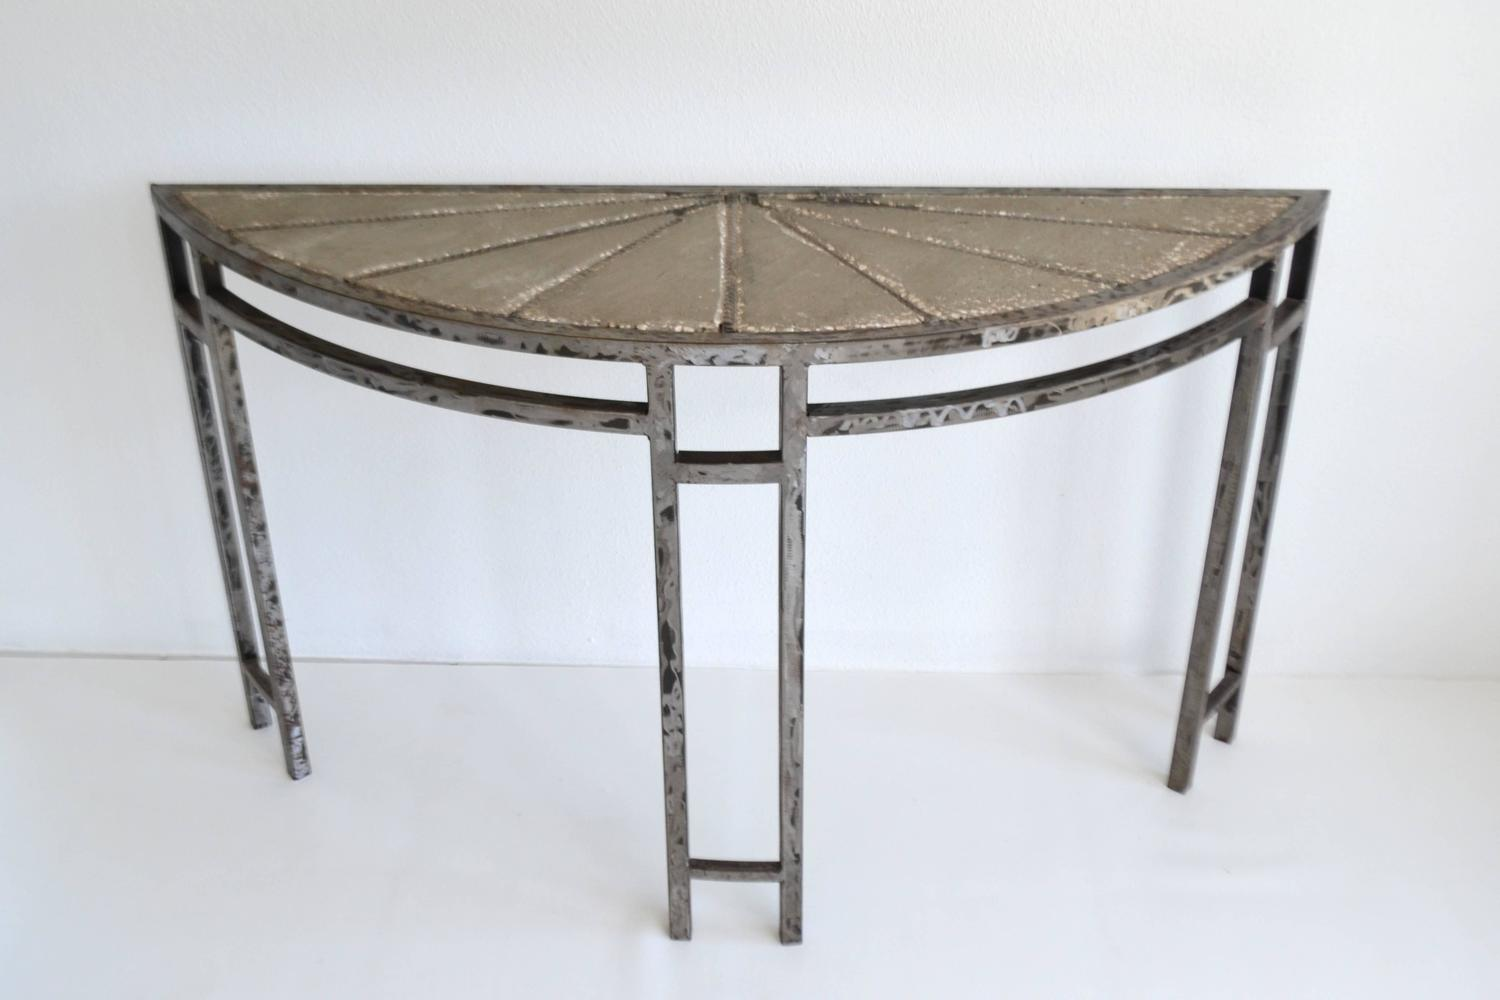 Brutalist console table for sale at 1stdibs for Table 52 oak brook